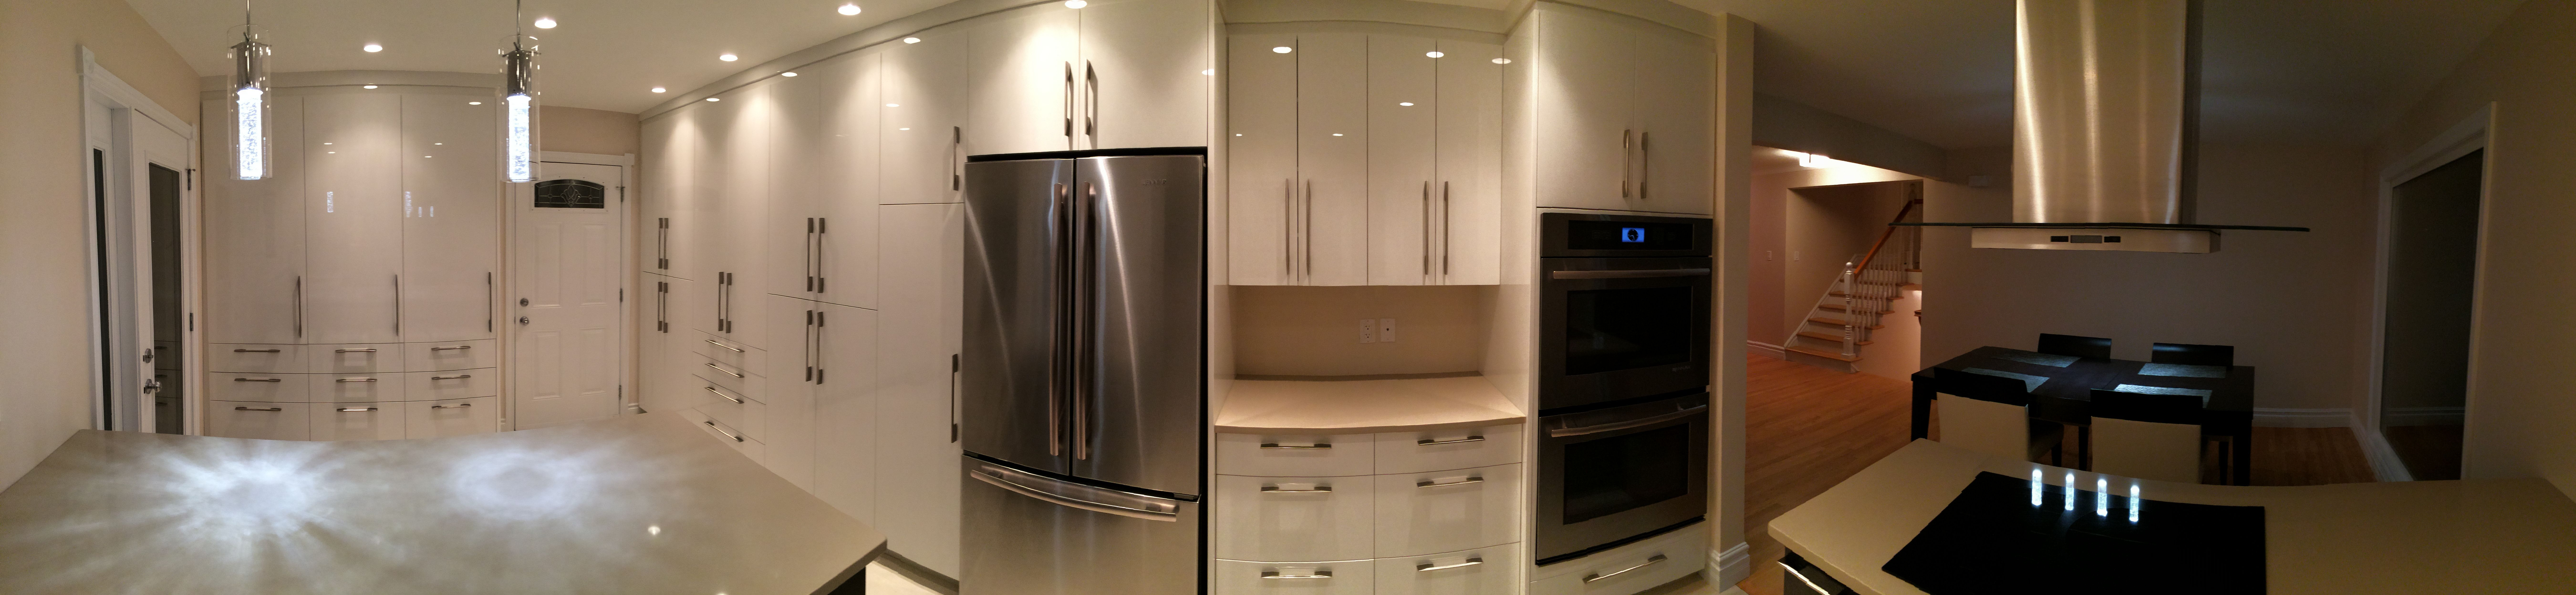 Contemporary Luxury Kitchen with High Gloss Acrylic Doors and Rich Dark Stained Maple Wood Island.